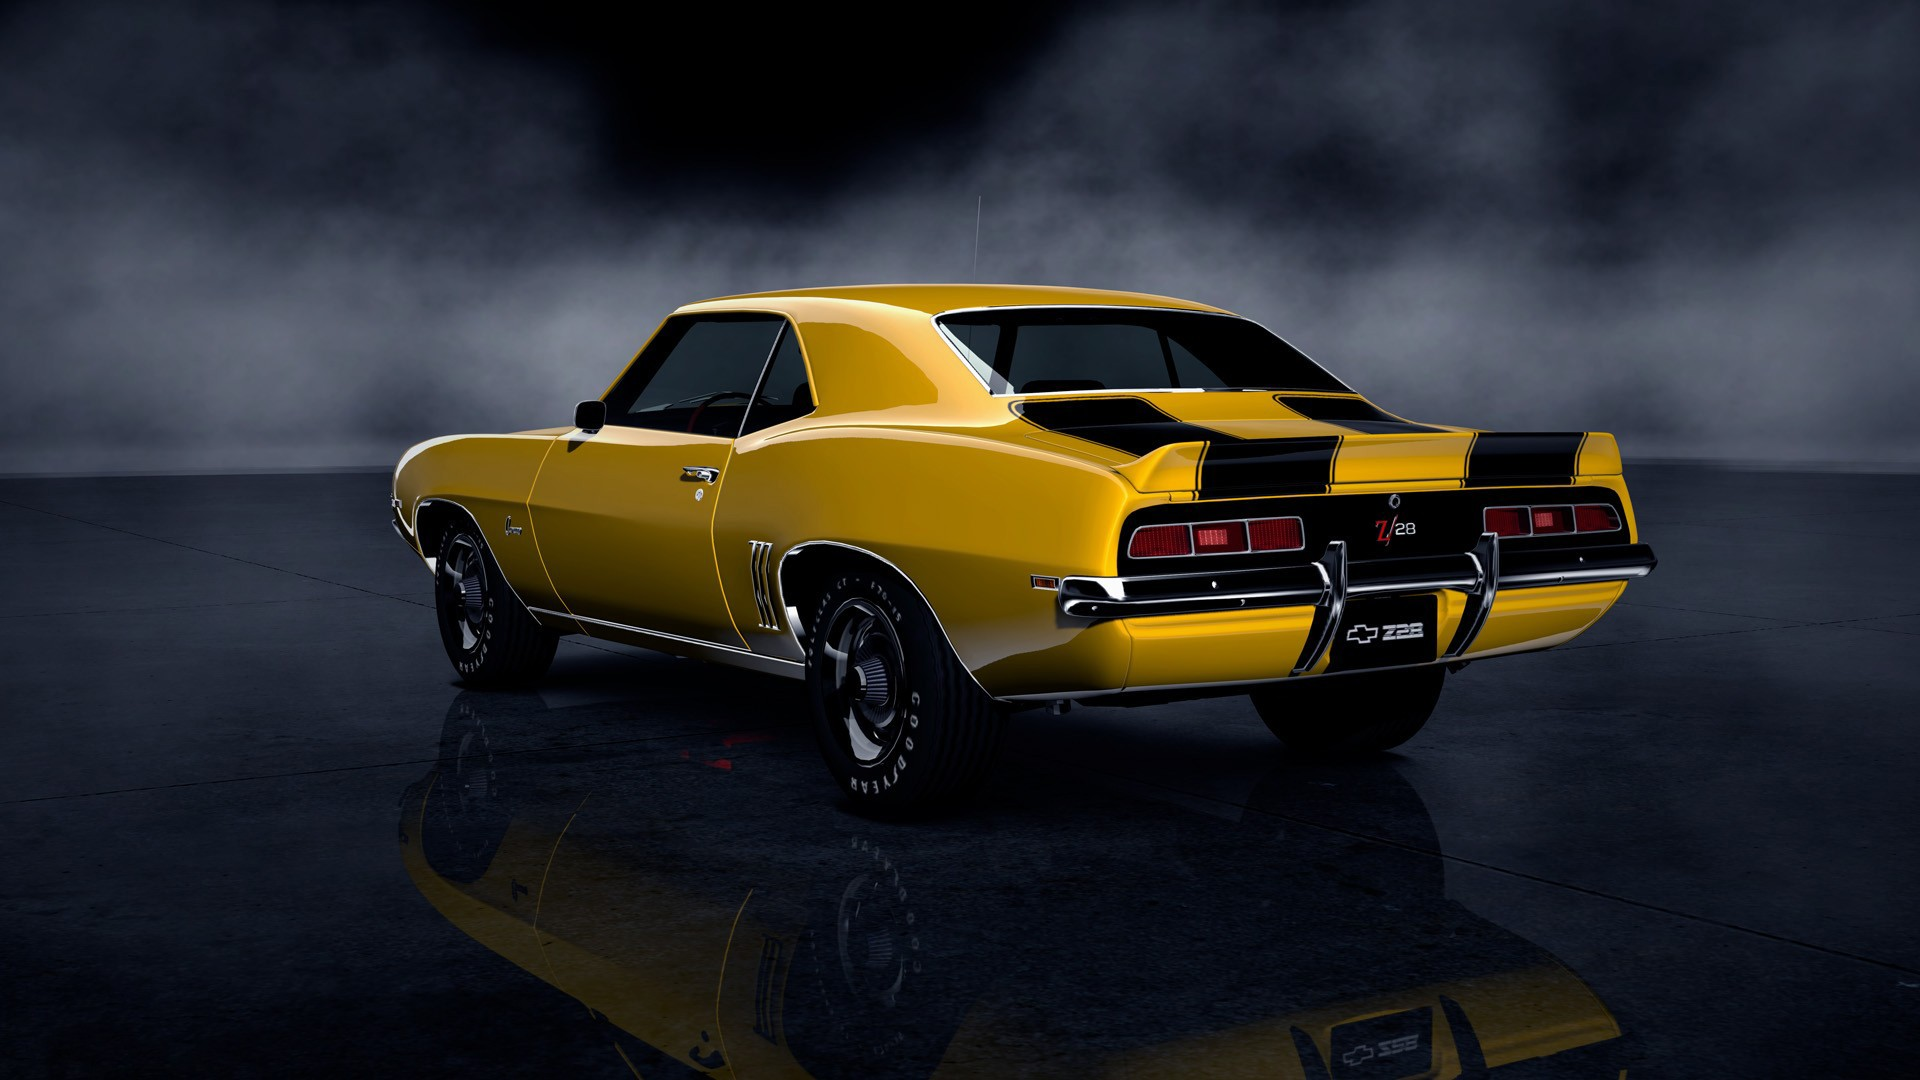 Free Download Fantastic Chevrolet 22 Quality Hd Image